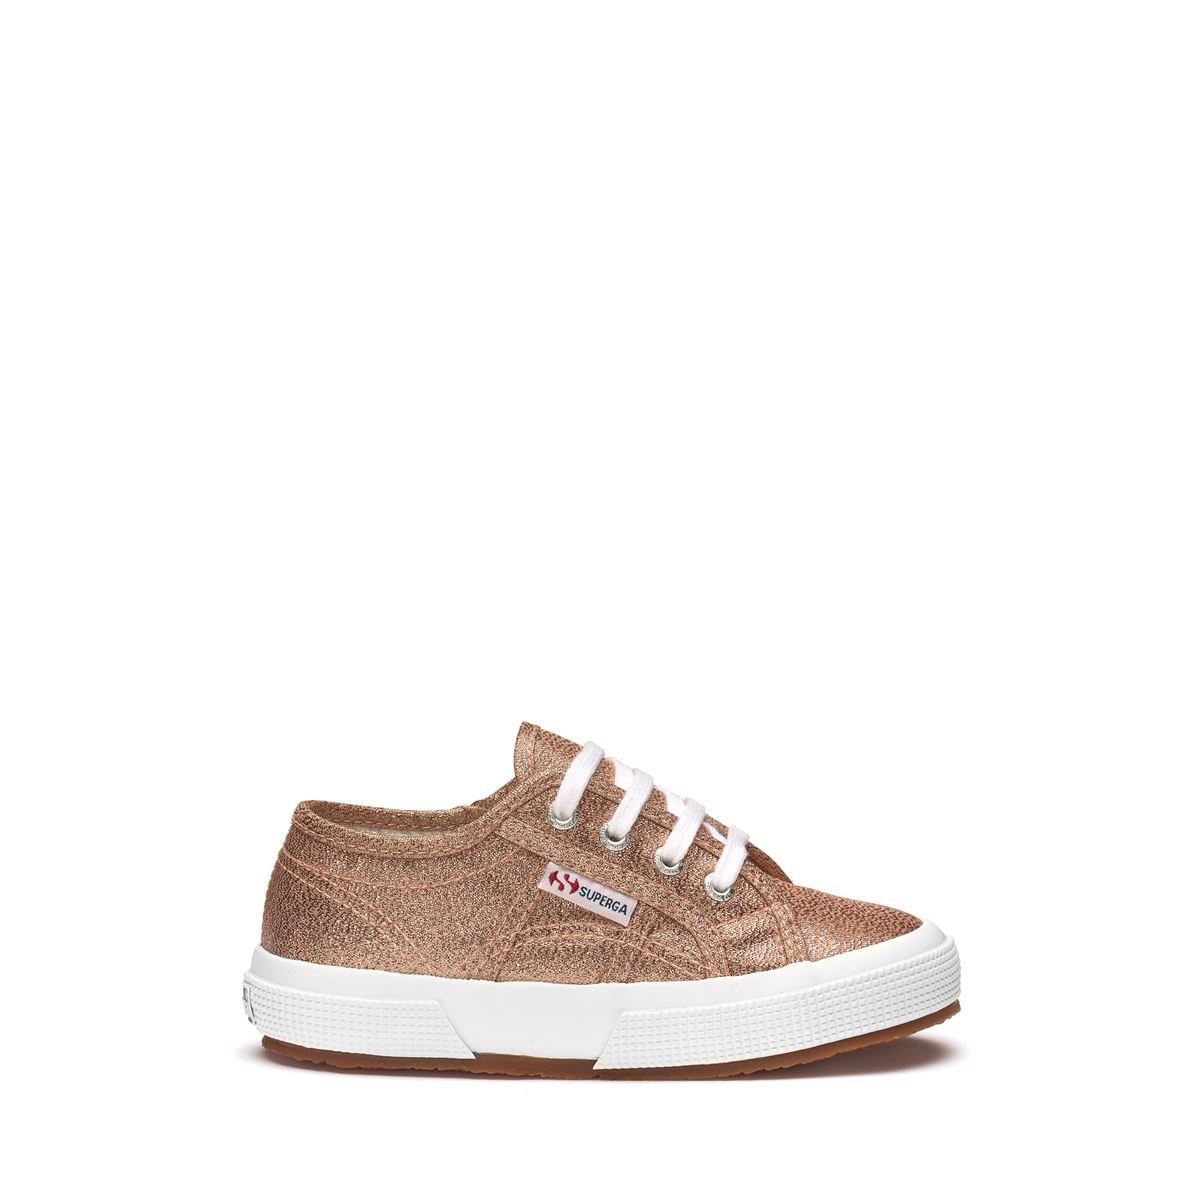 Italian Le Superga Superga for kid men and women-S002J20